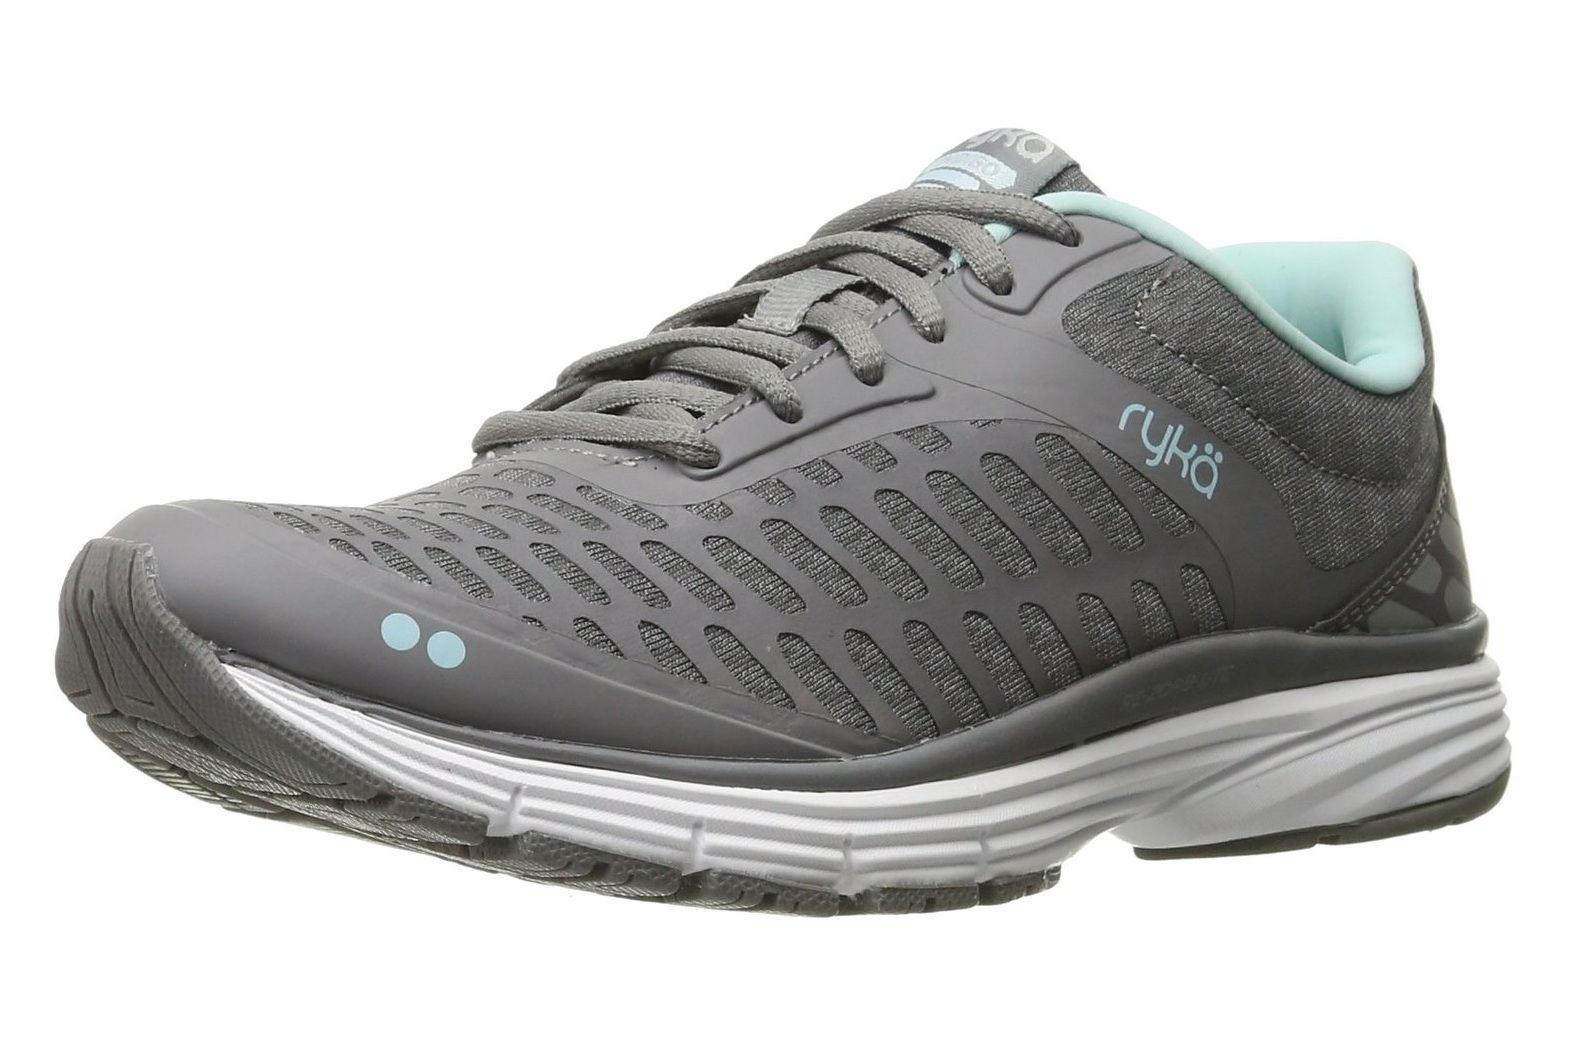 f9837d2cd6f The 7 Best Performance Walking Shoes of 2019